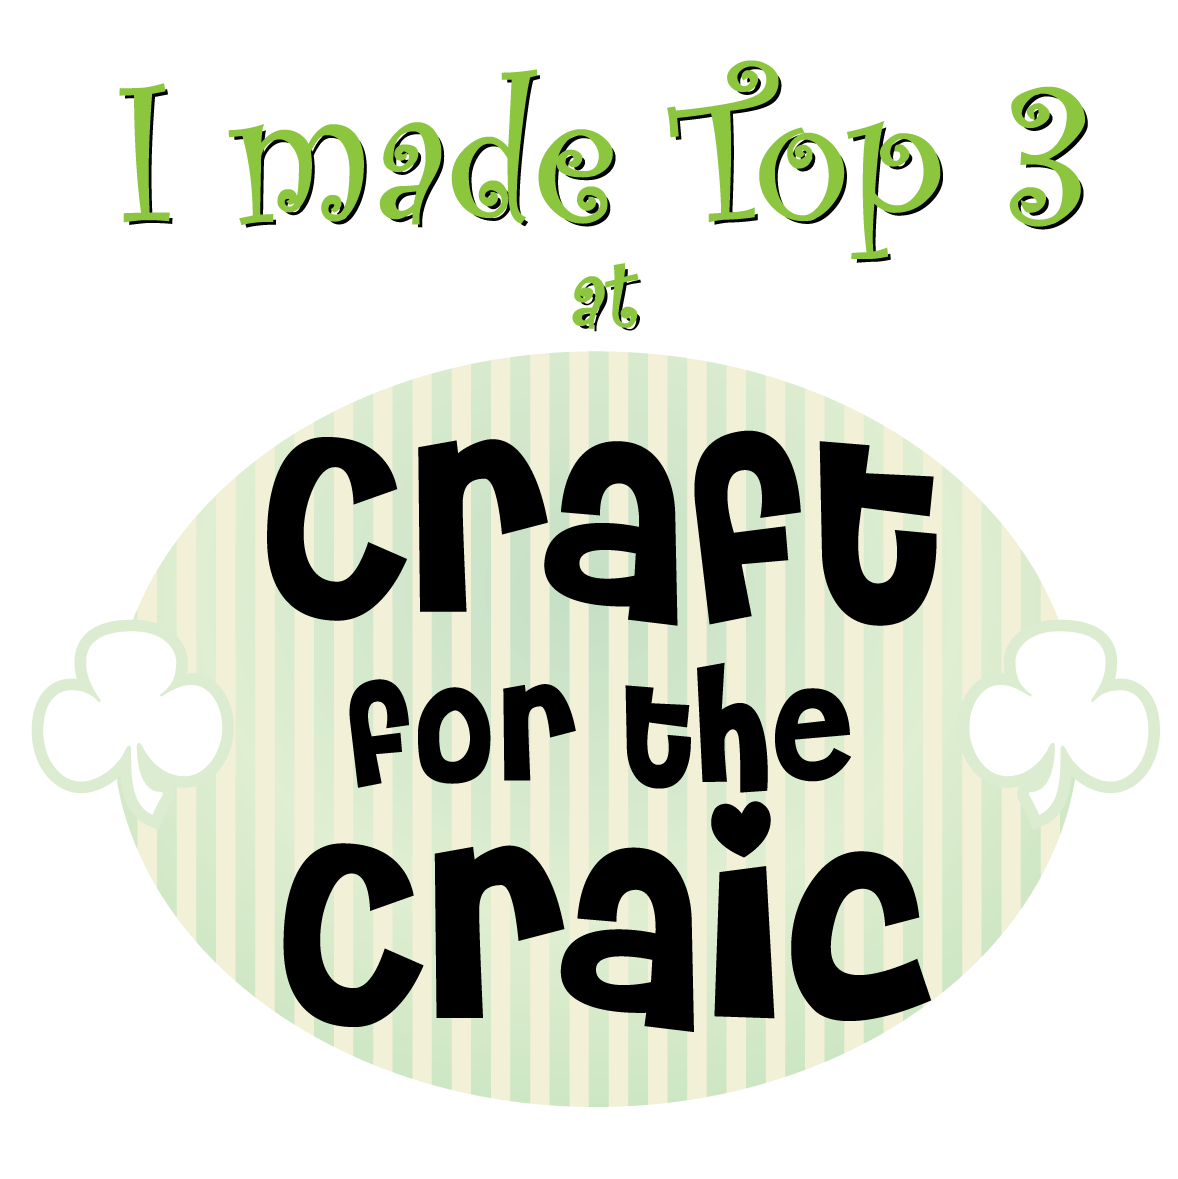 Craft for the craic